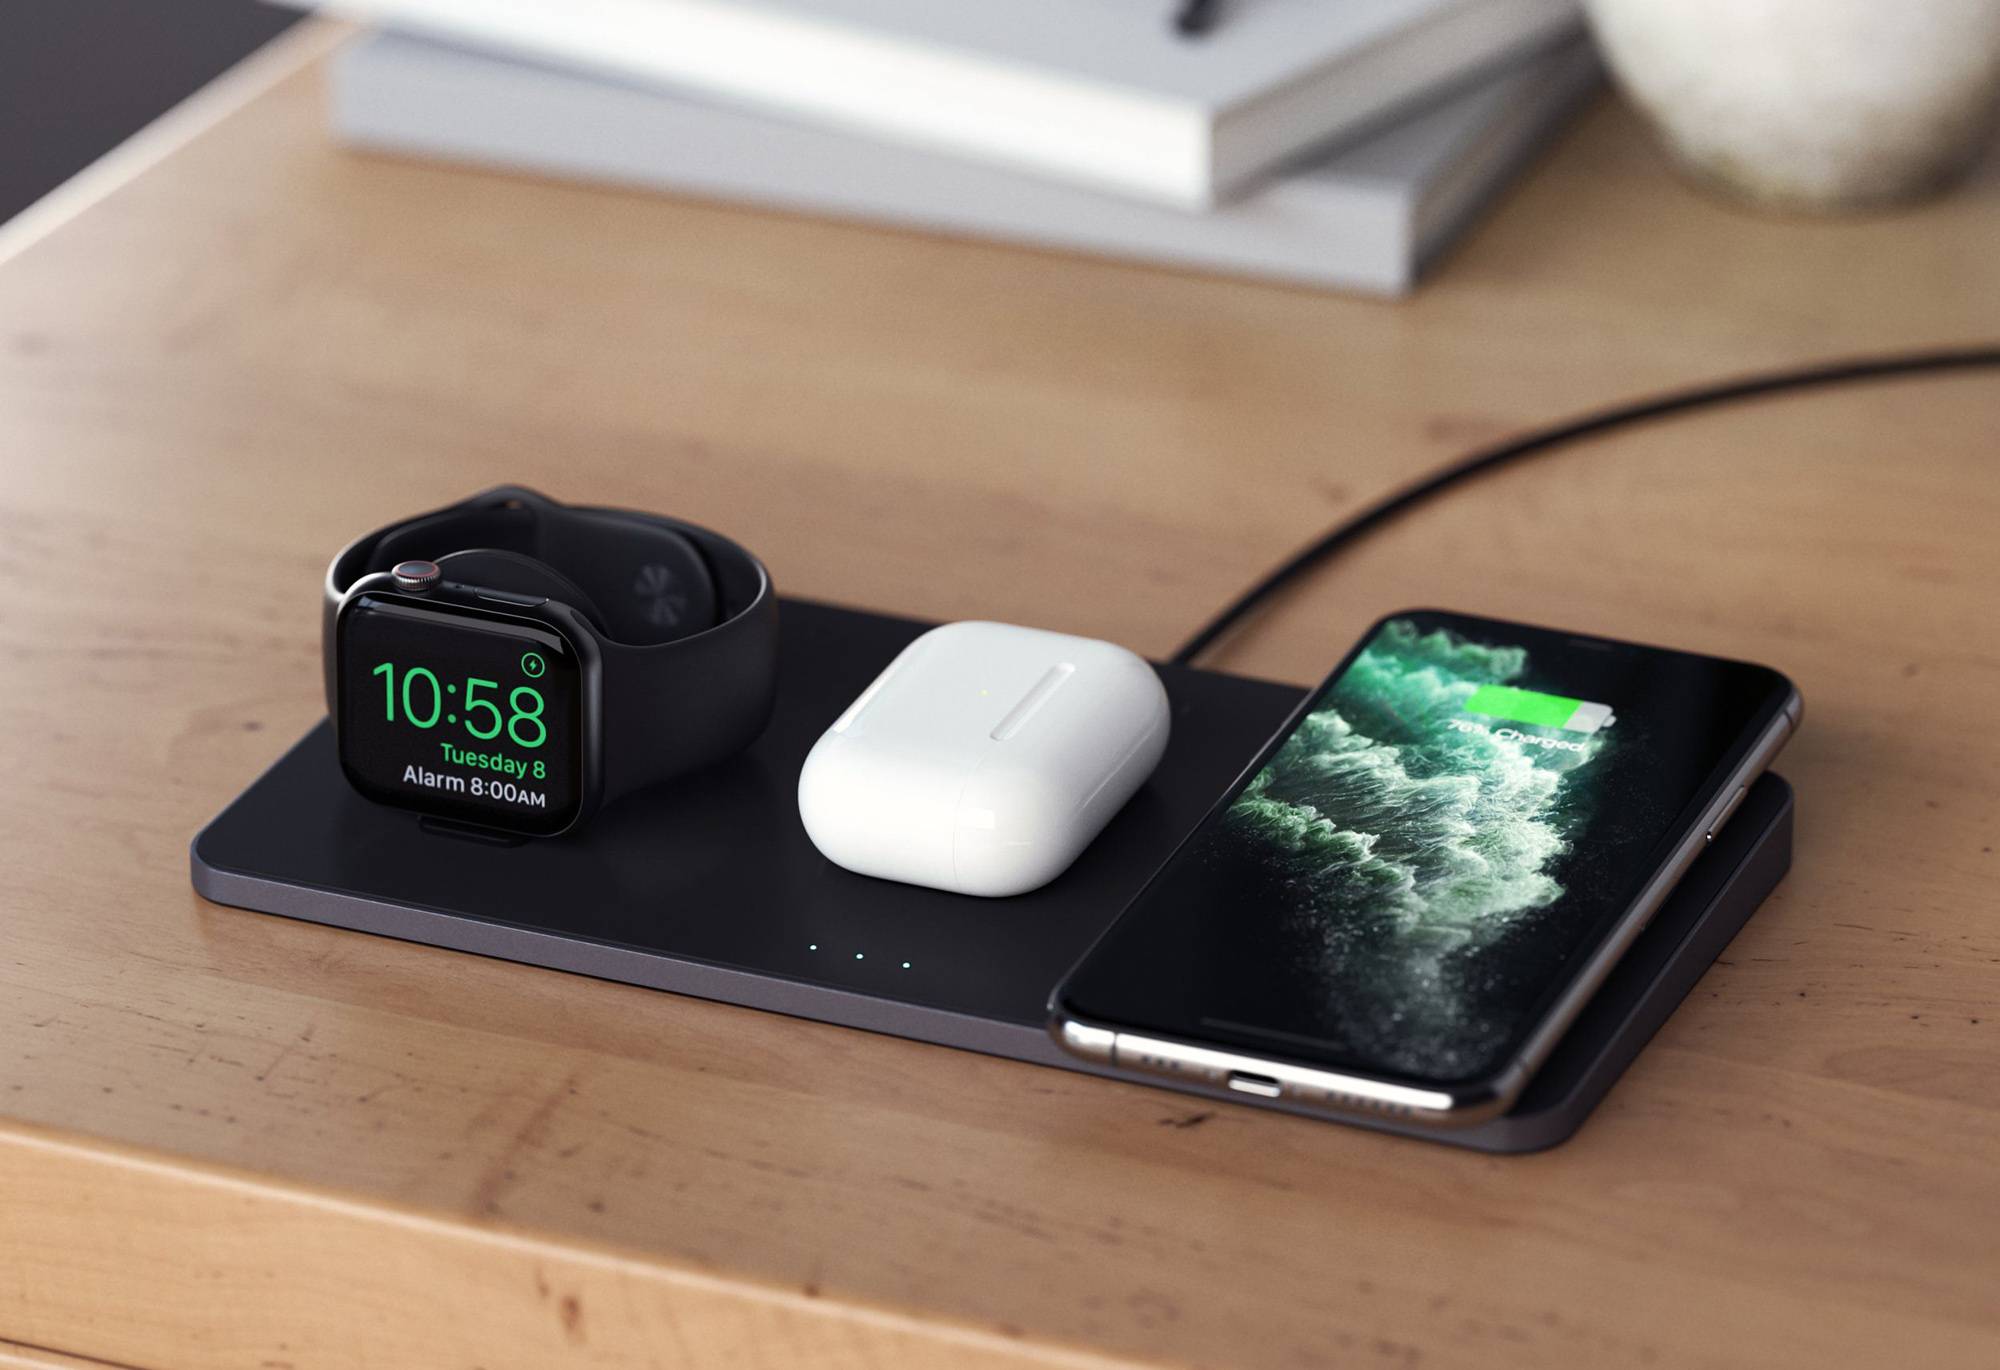 MacRumors Giveaway: Acquire a Trio Wireless Charging Pad From Satechi